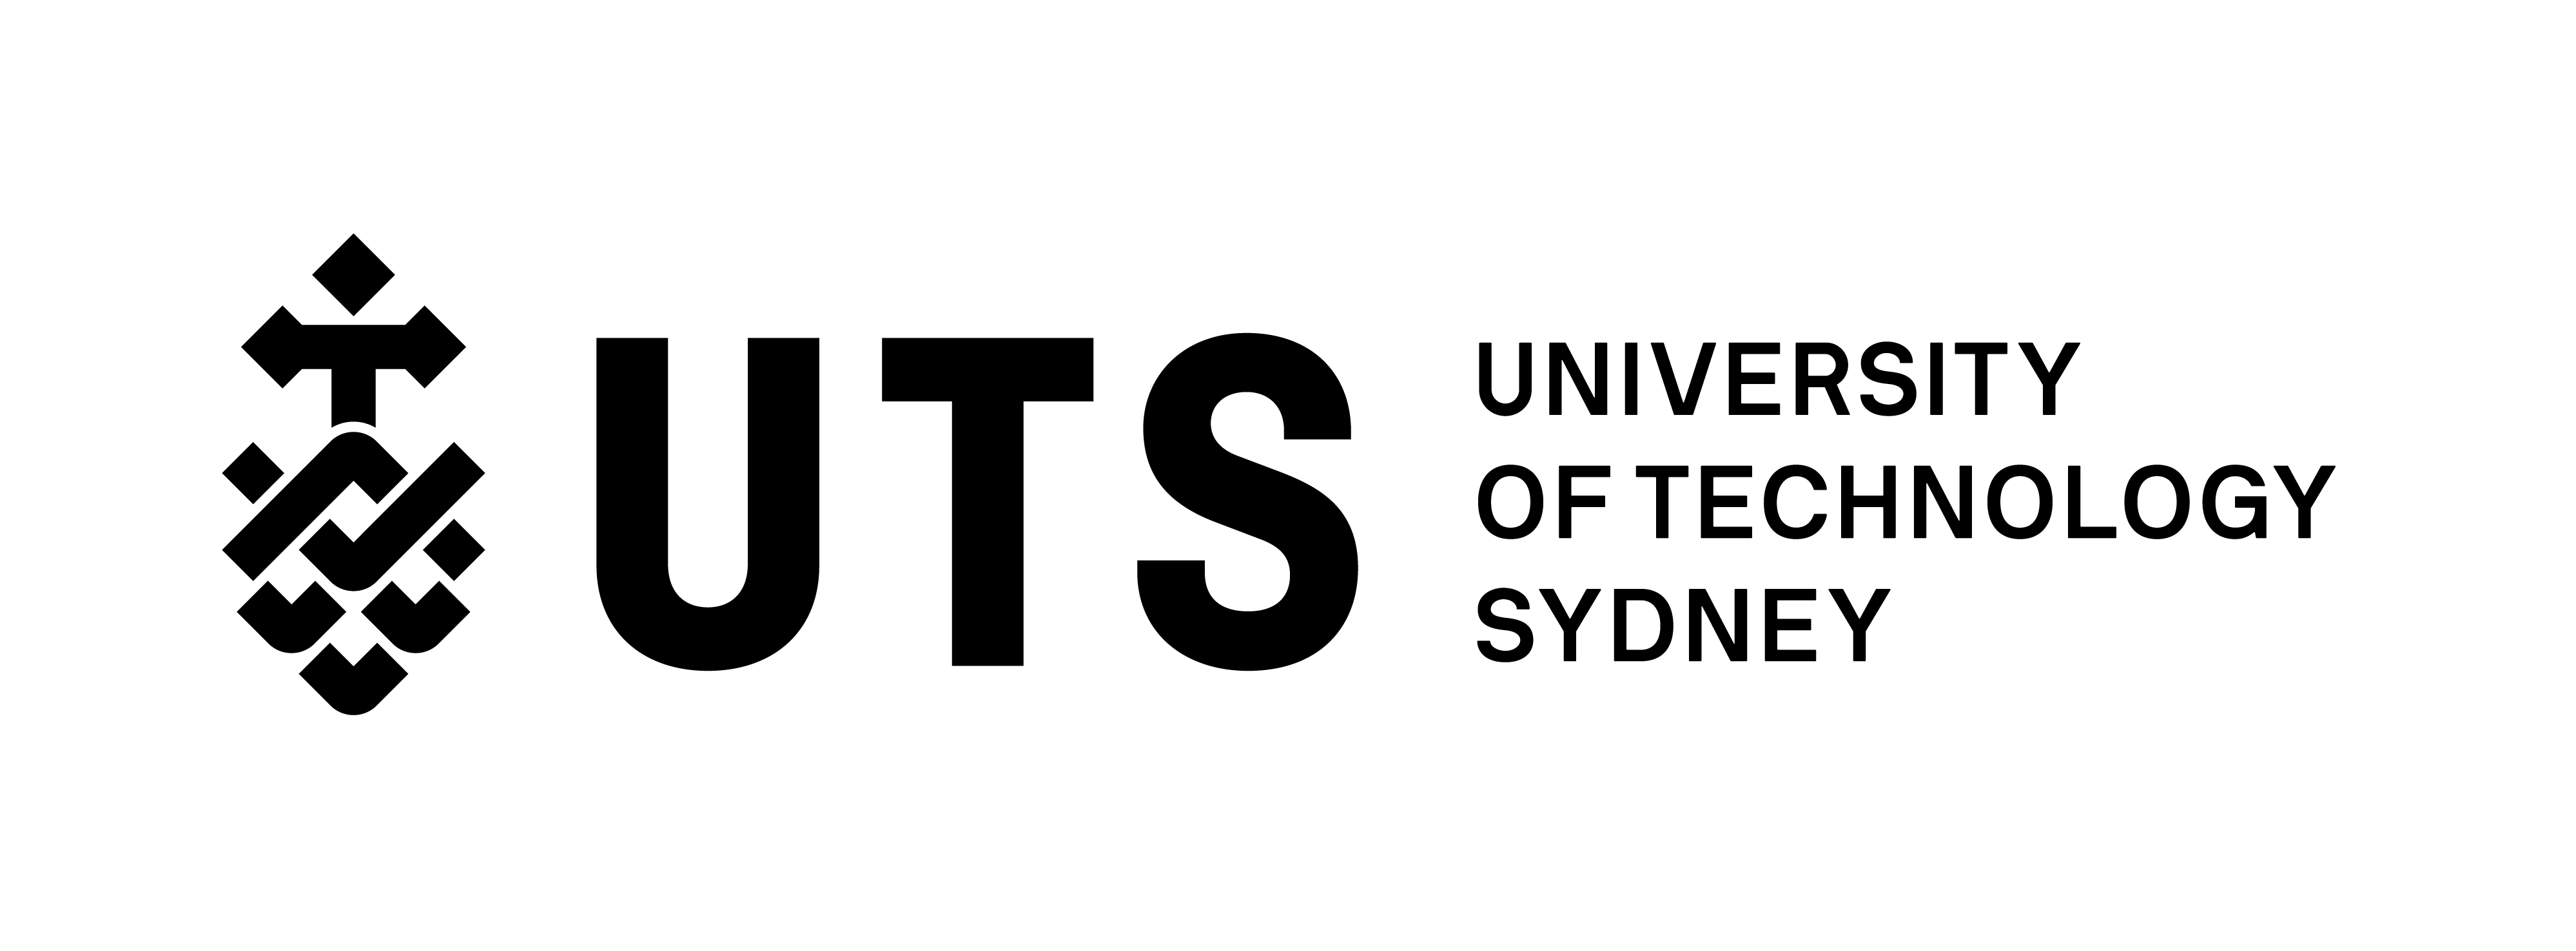 University of Technology Sydney - Bachelor of Music and Sound Design